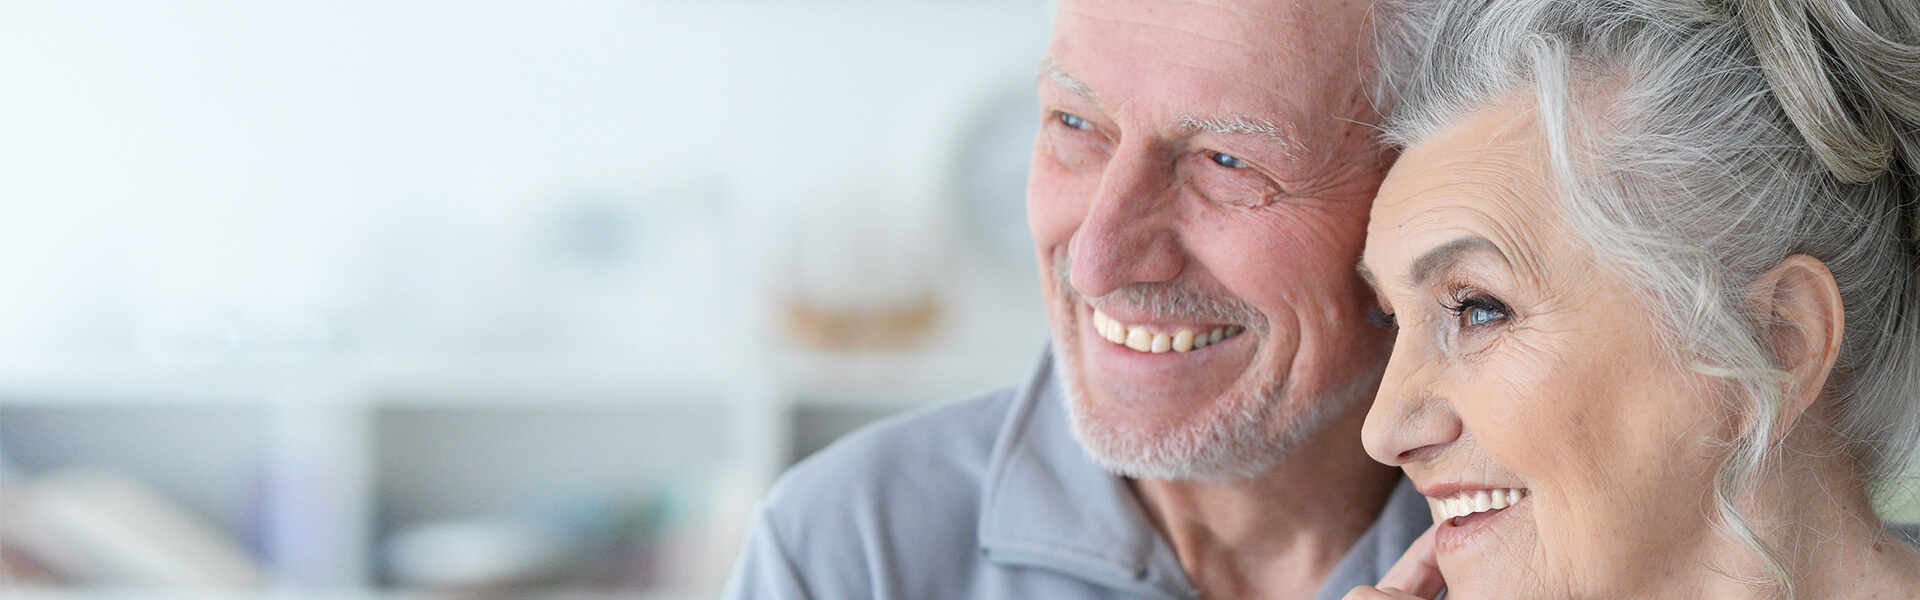 Dentures Services In Jackson, MS